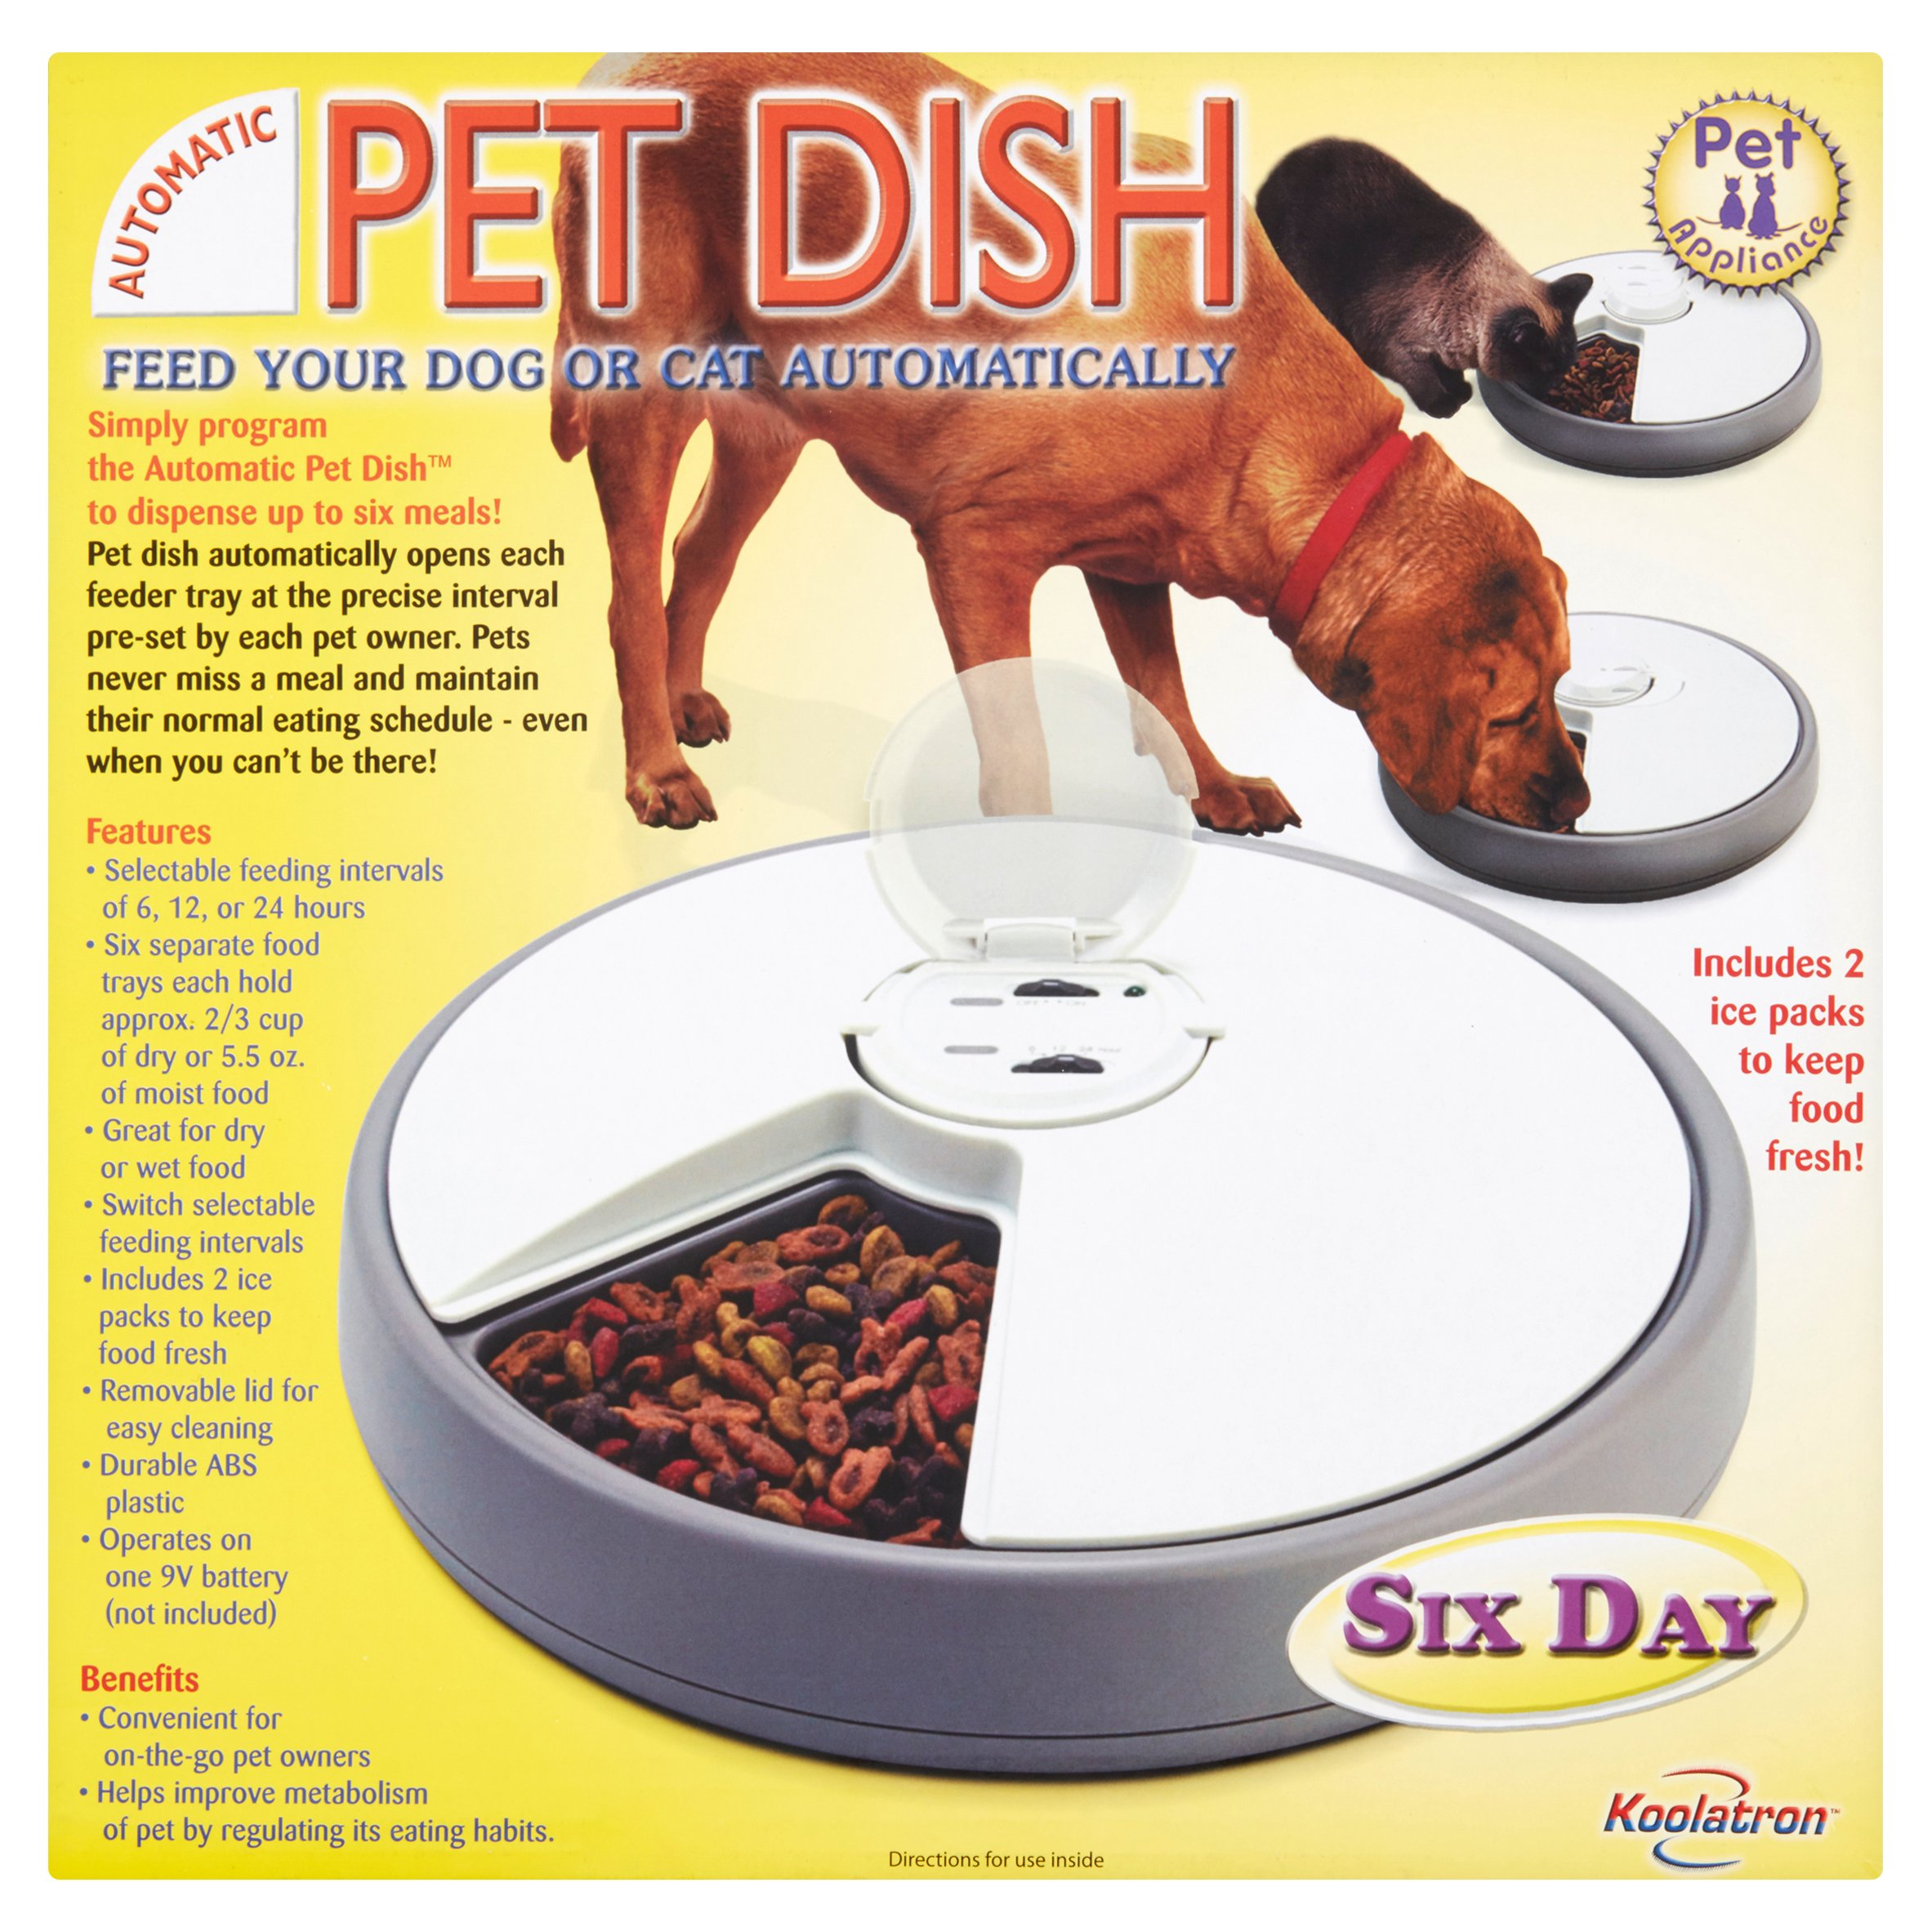 ds kiwi l slow bowls pet for product fountains maze dog feeder dogs